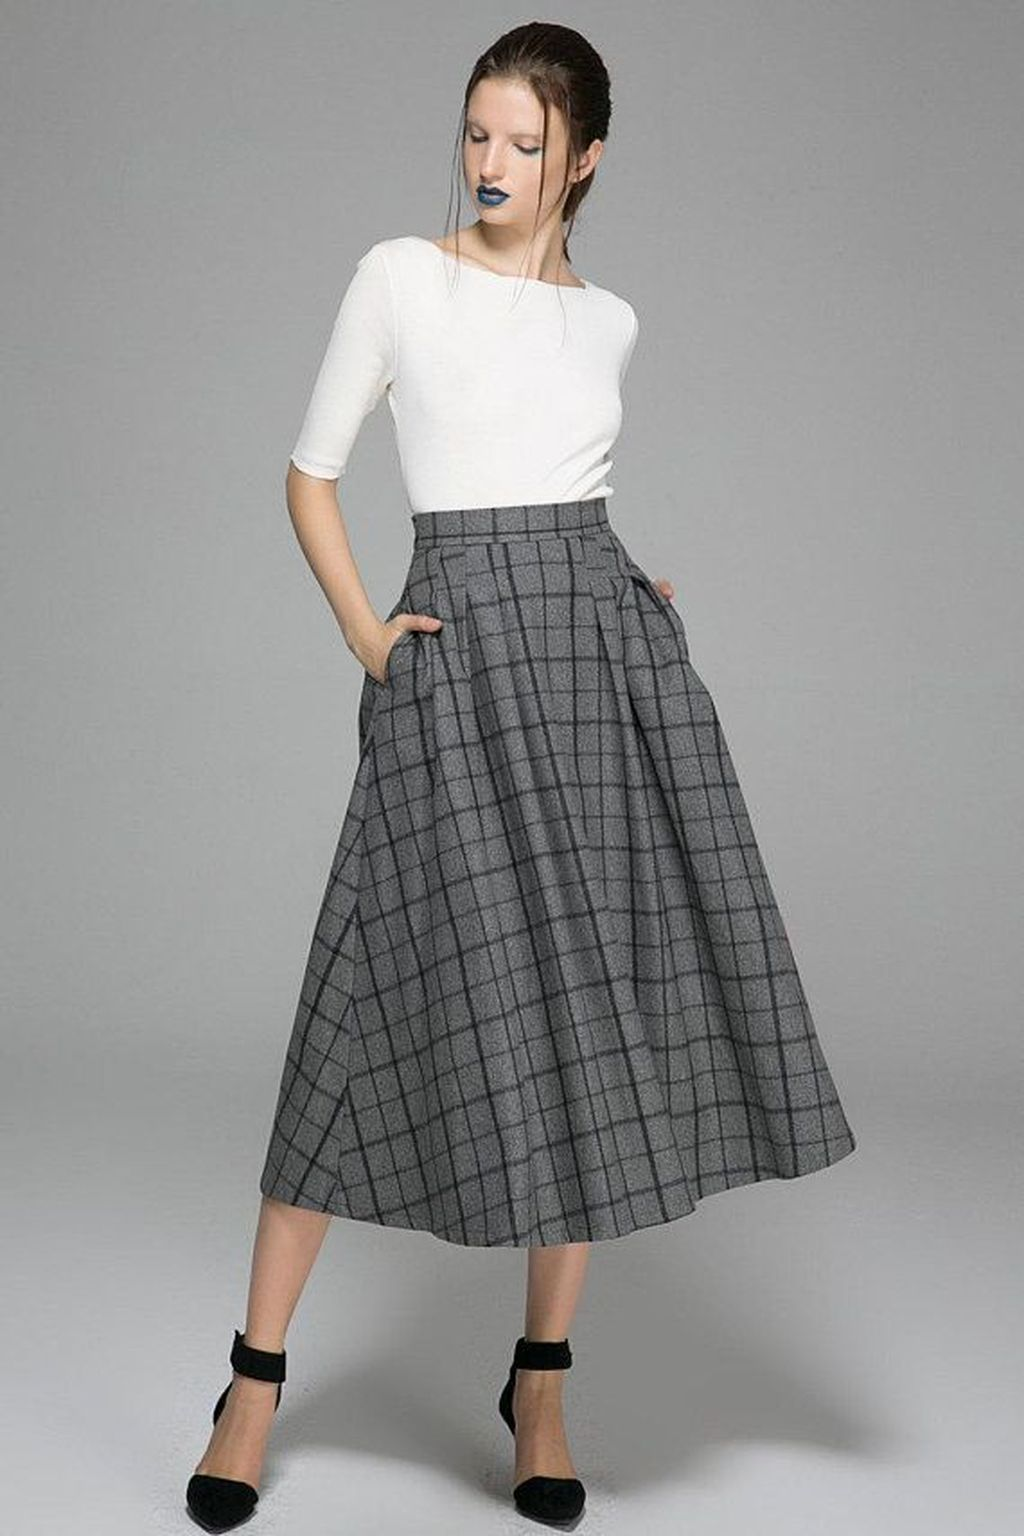 49d70c49f983e4 Pin by ADDICFASHION on Womens Fashion in 2019 | Winter skirt, Wool ...